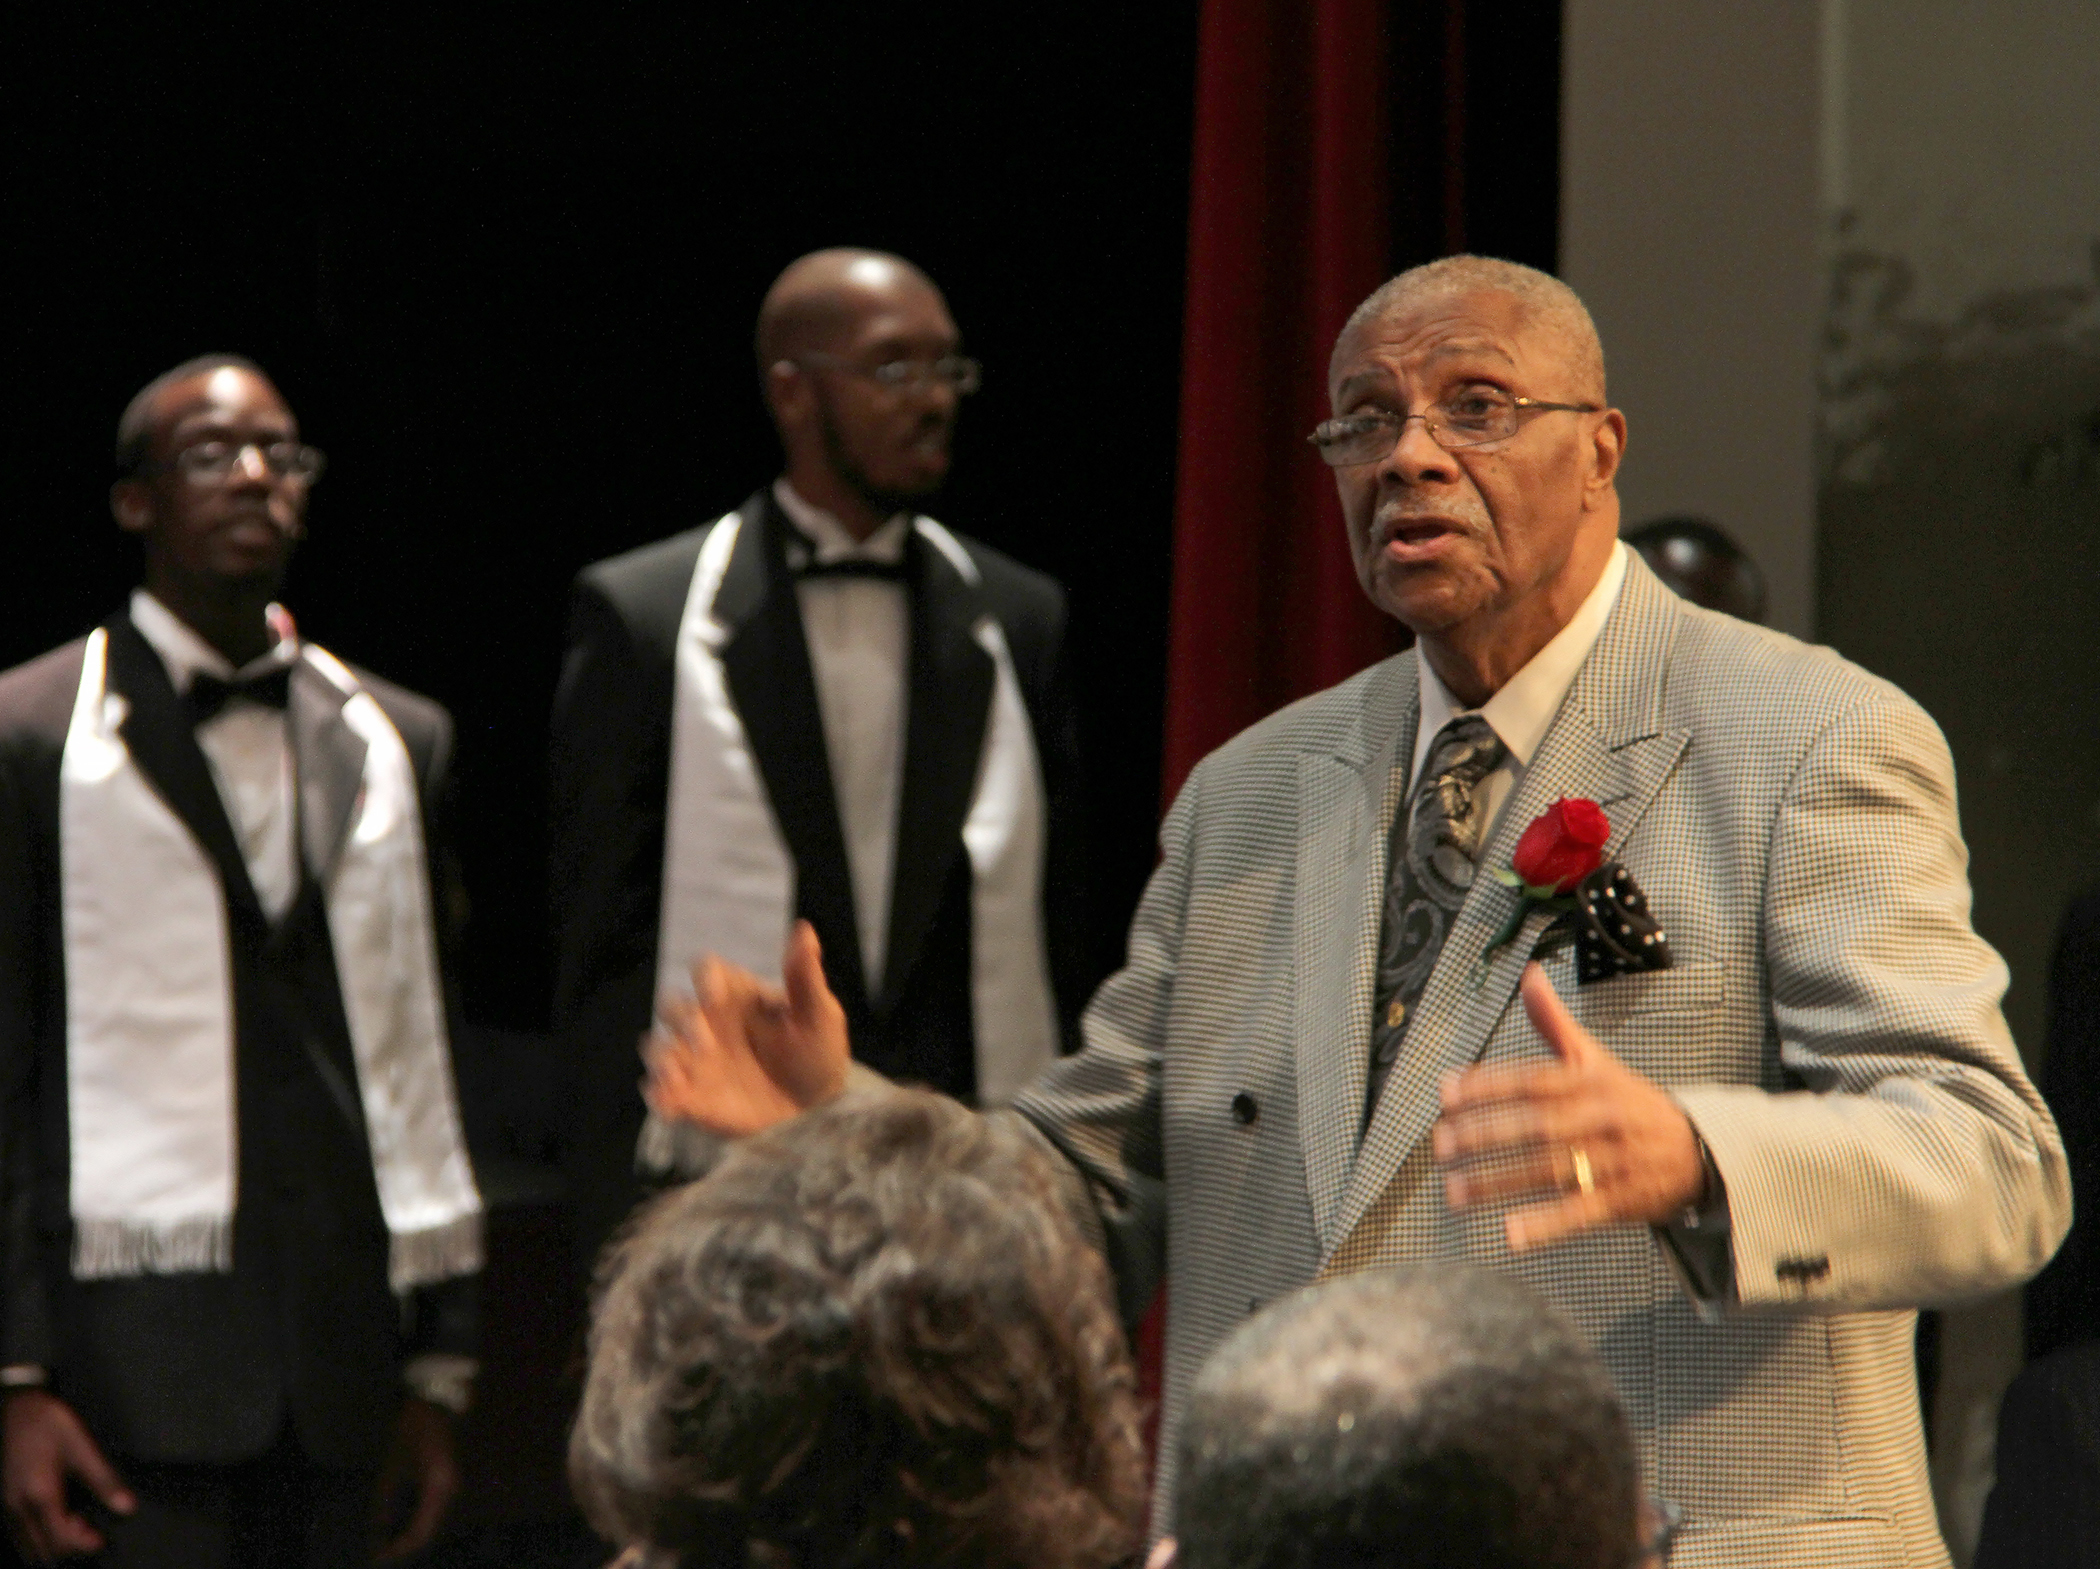 Dr. Bobby G. Cooper, director of the Jubilee Singers at Hinds Community College's Utica Campus. Photo courtesy Hinds Community College